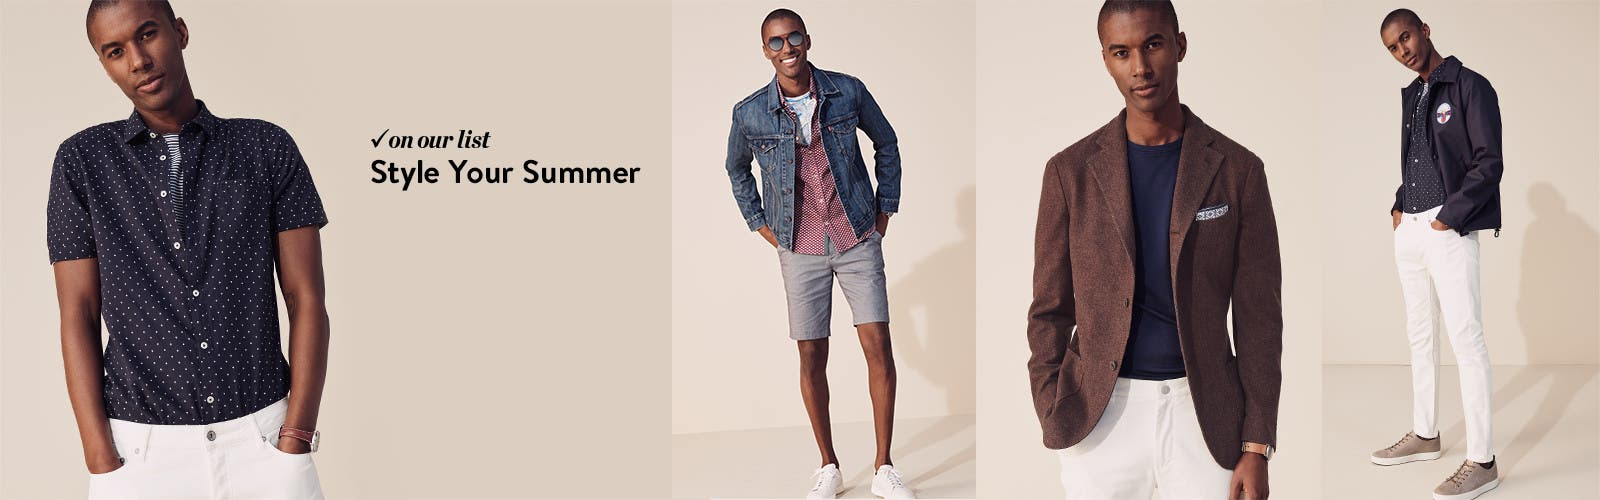 Style Your Summer